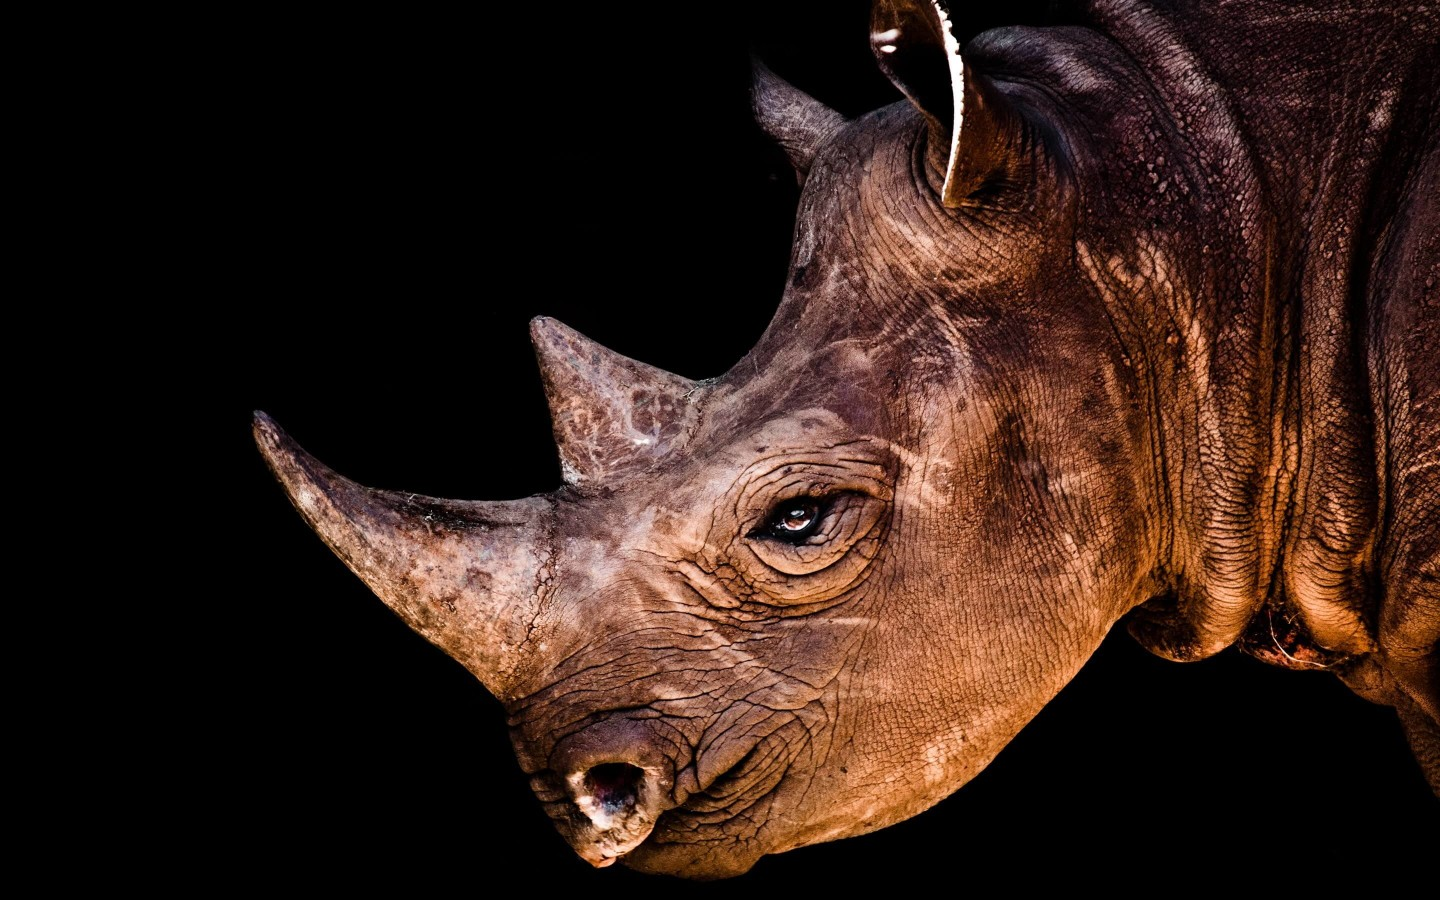 Rhinoceros Portrait Wallpaper for Desktop 1440x900